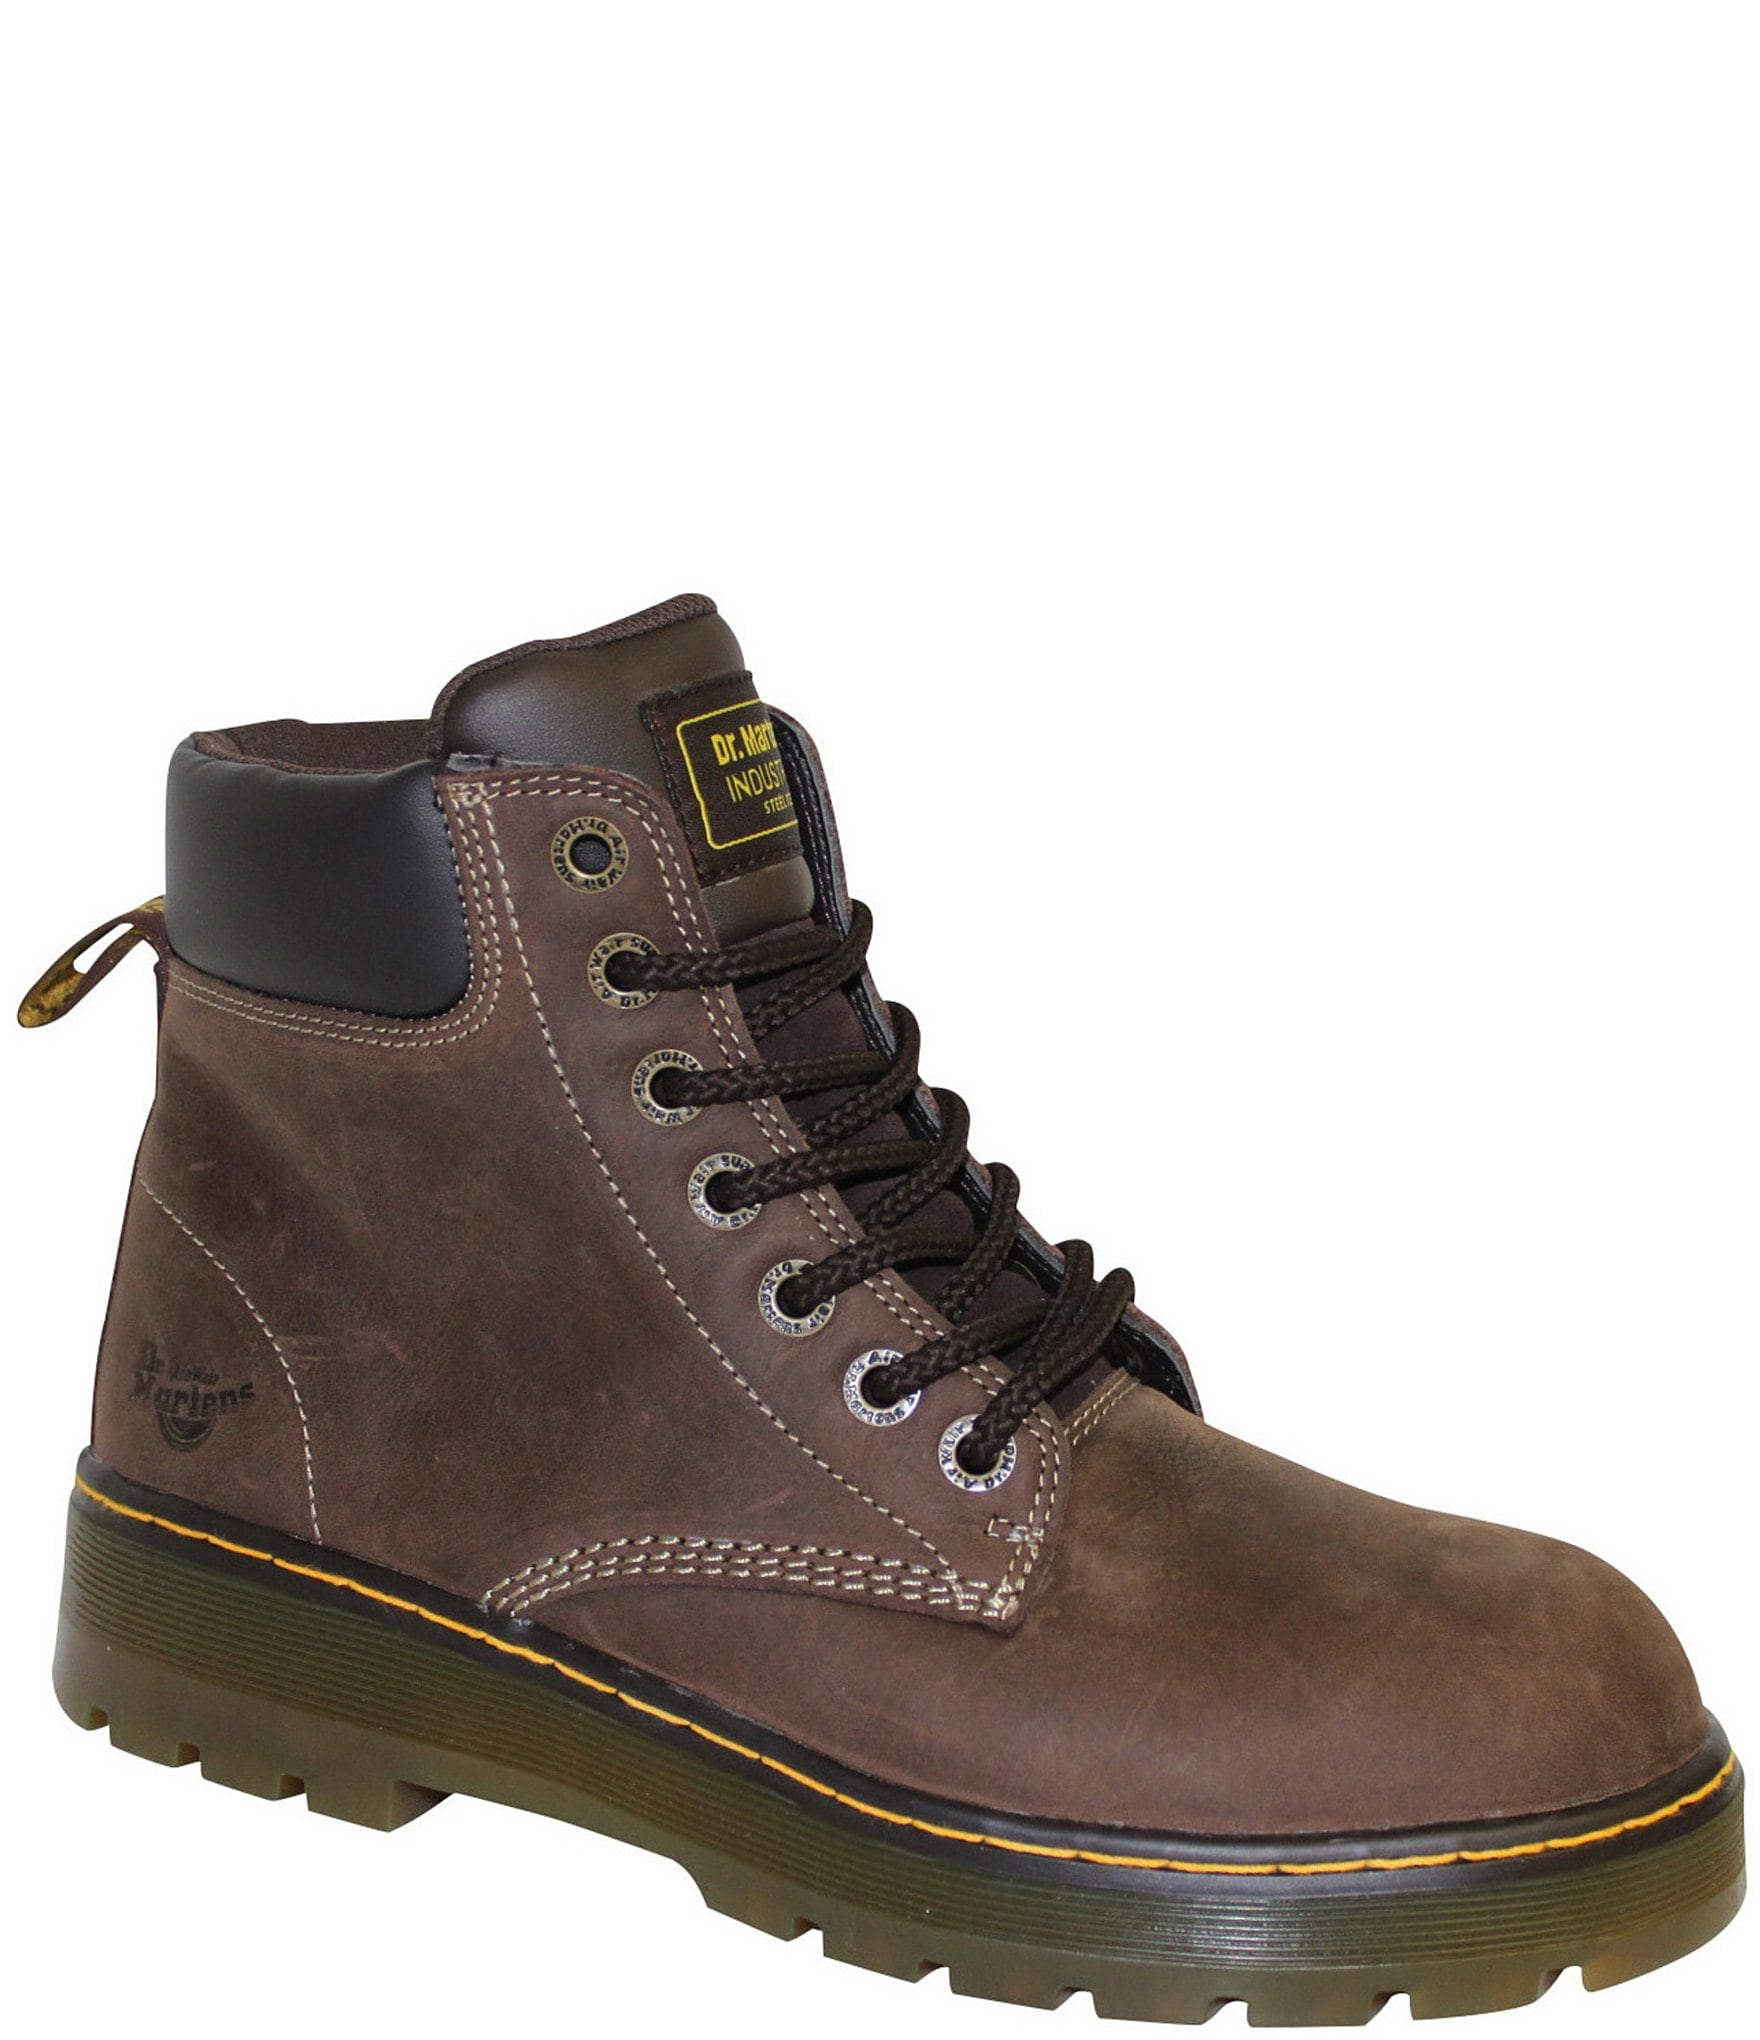 f2855ac76ef Dr. Martens Men's Winch St Boots